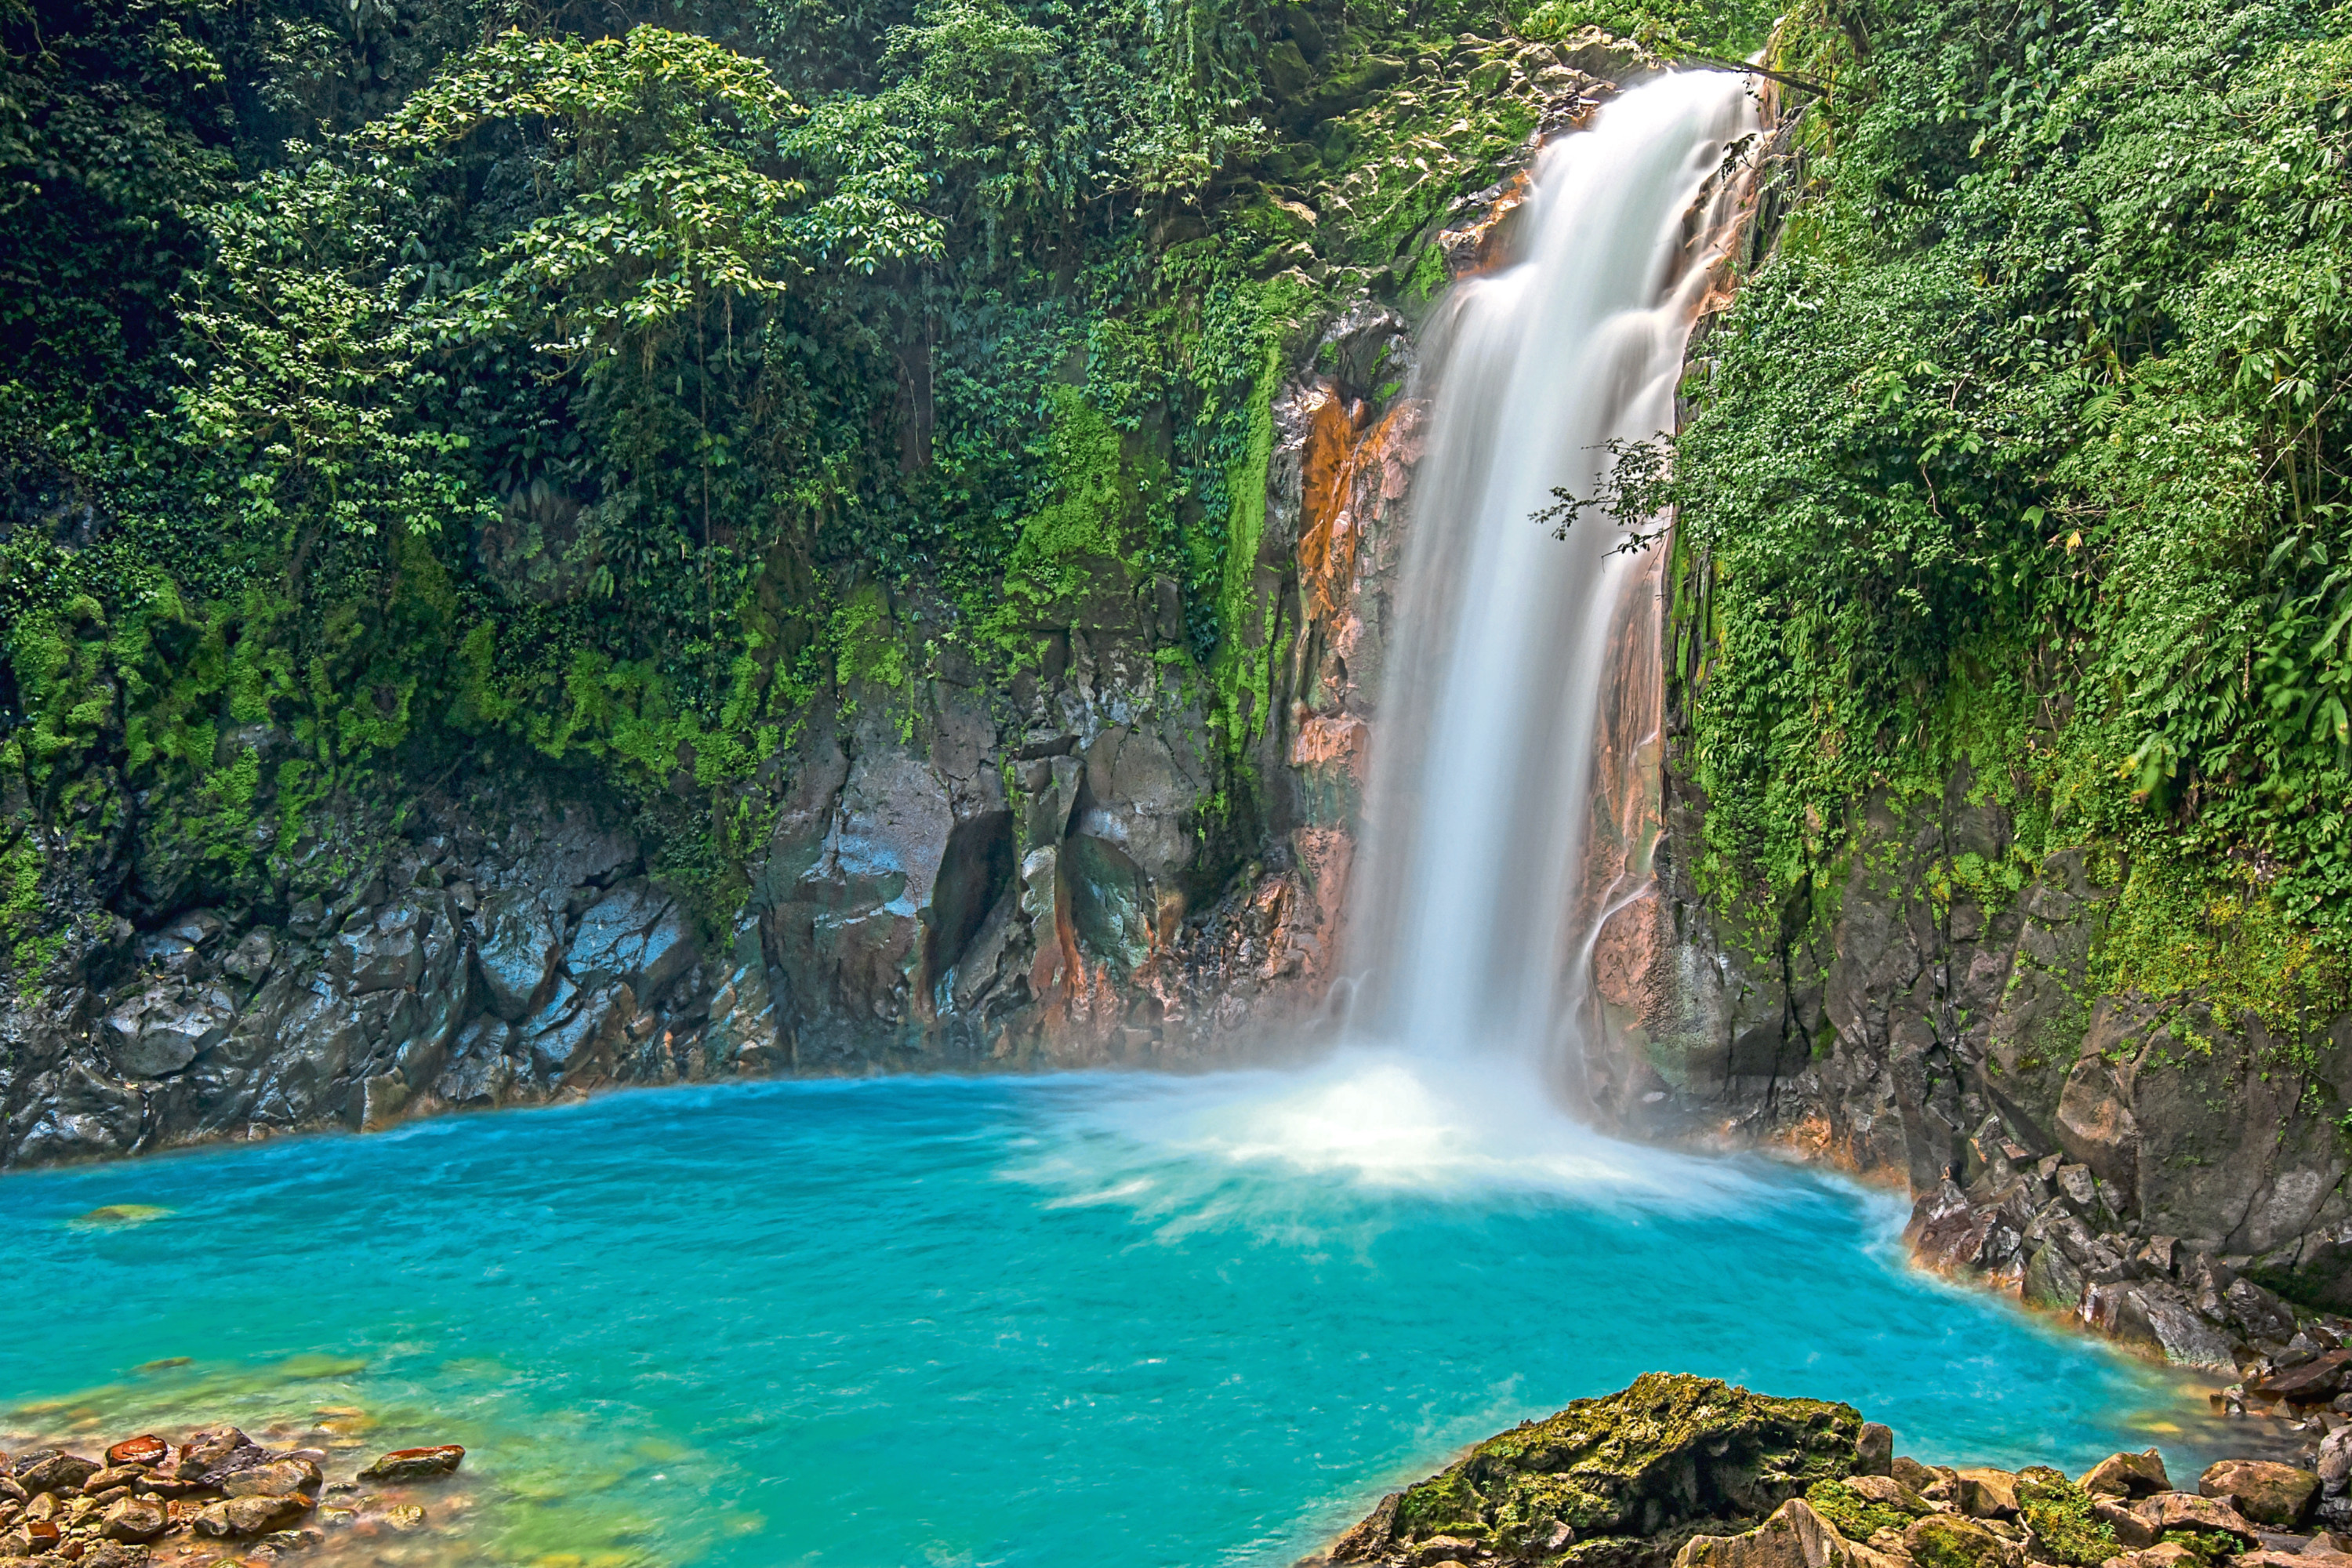 Rio Celeste Waterfall in Costa Rica, a country of immense beauty – and spiders!